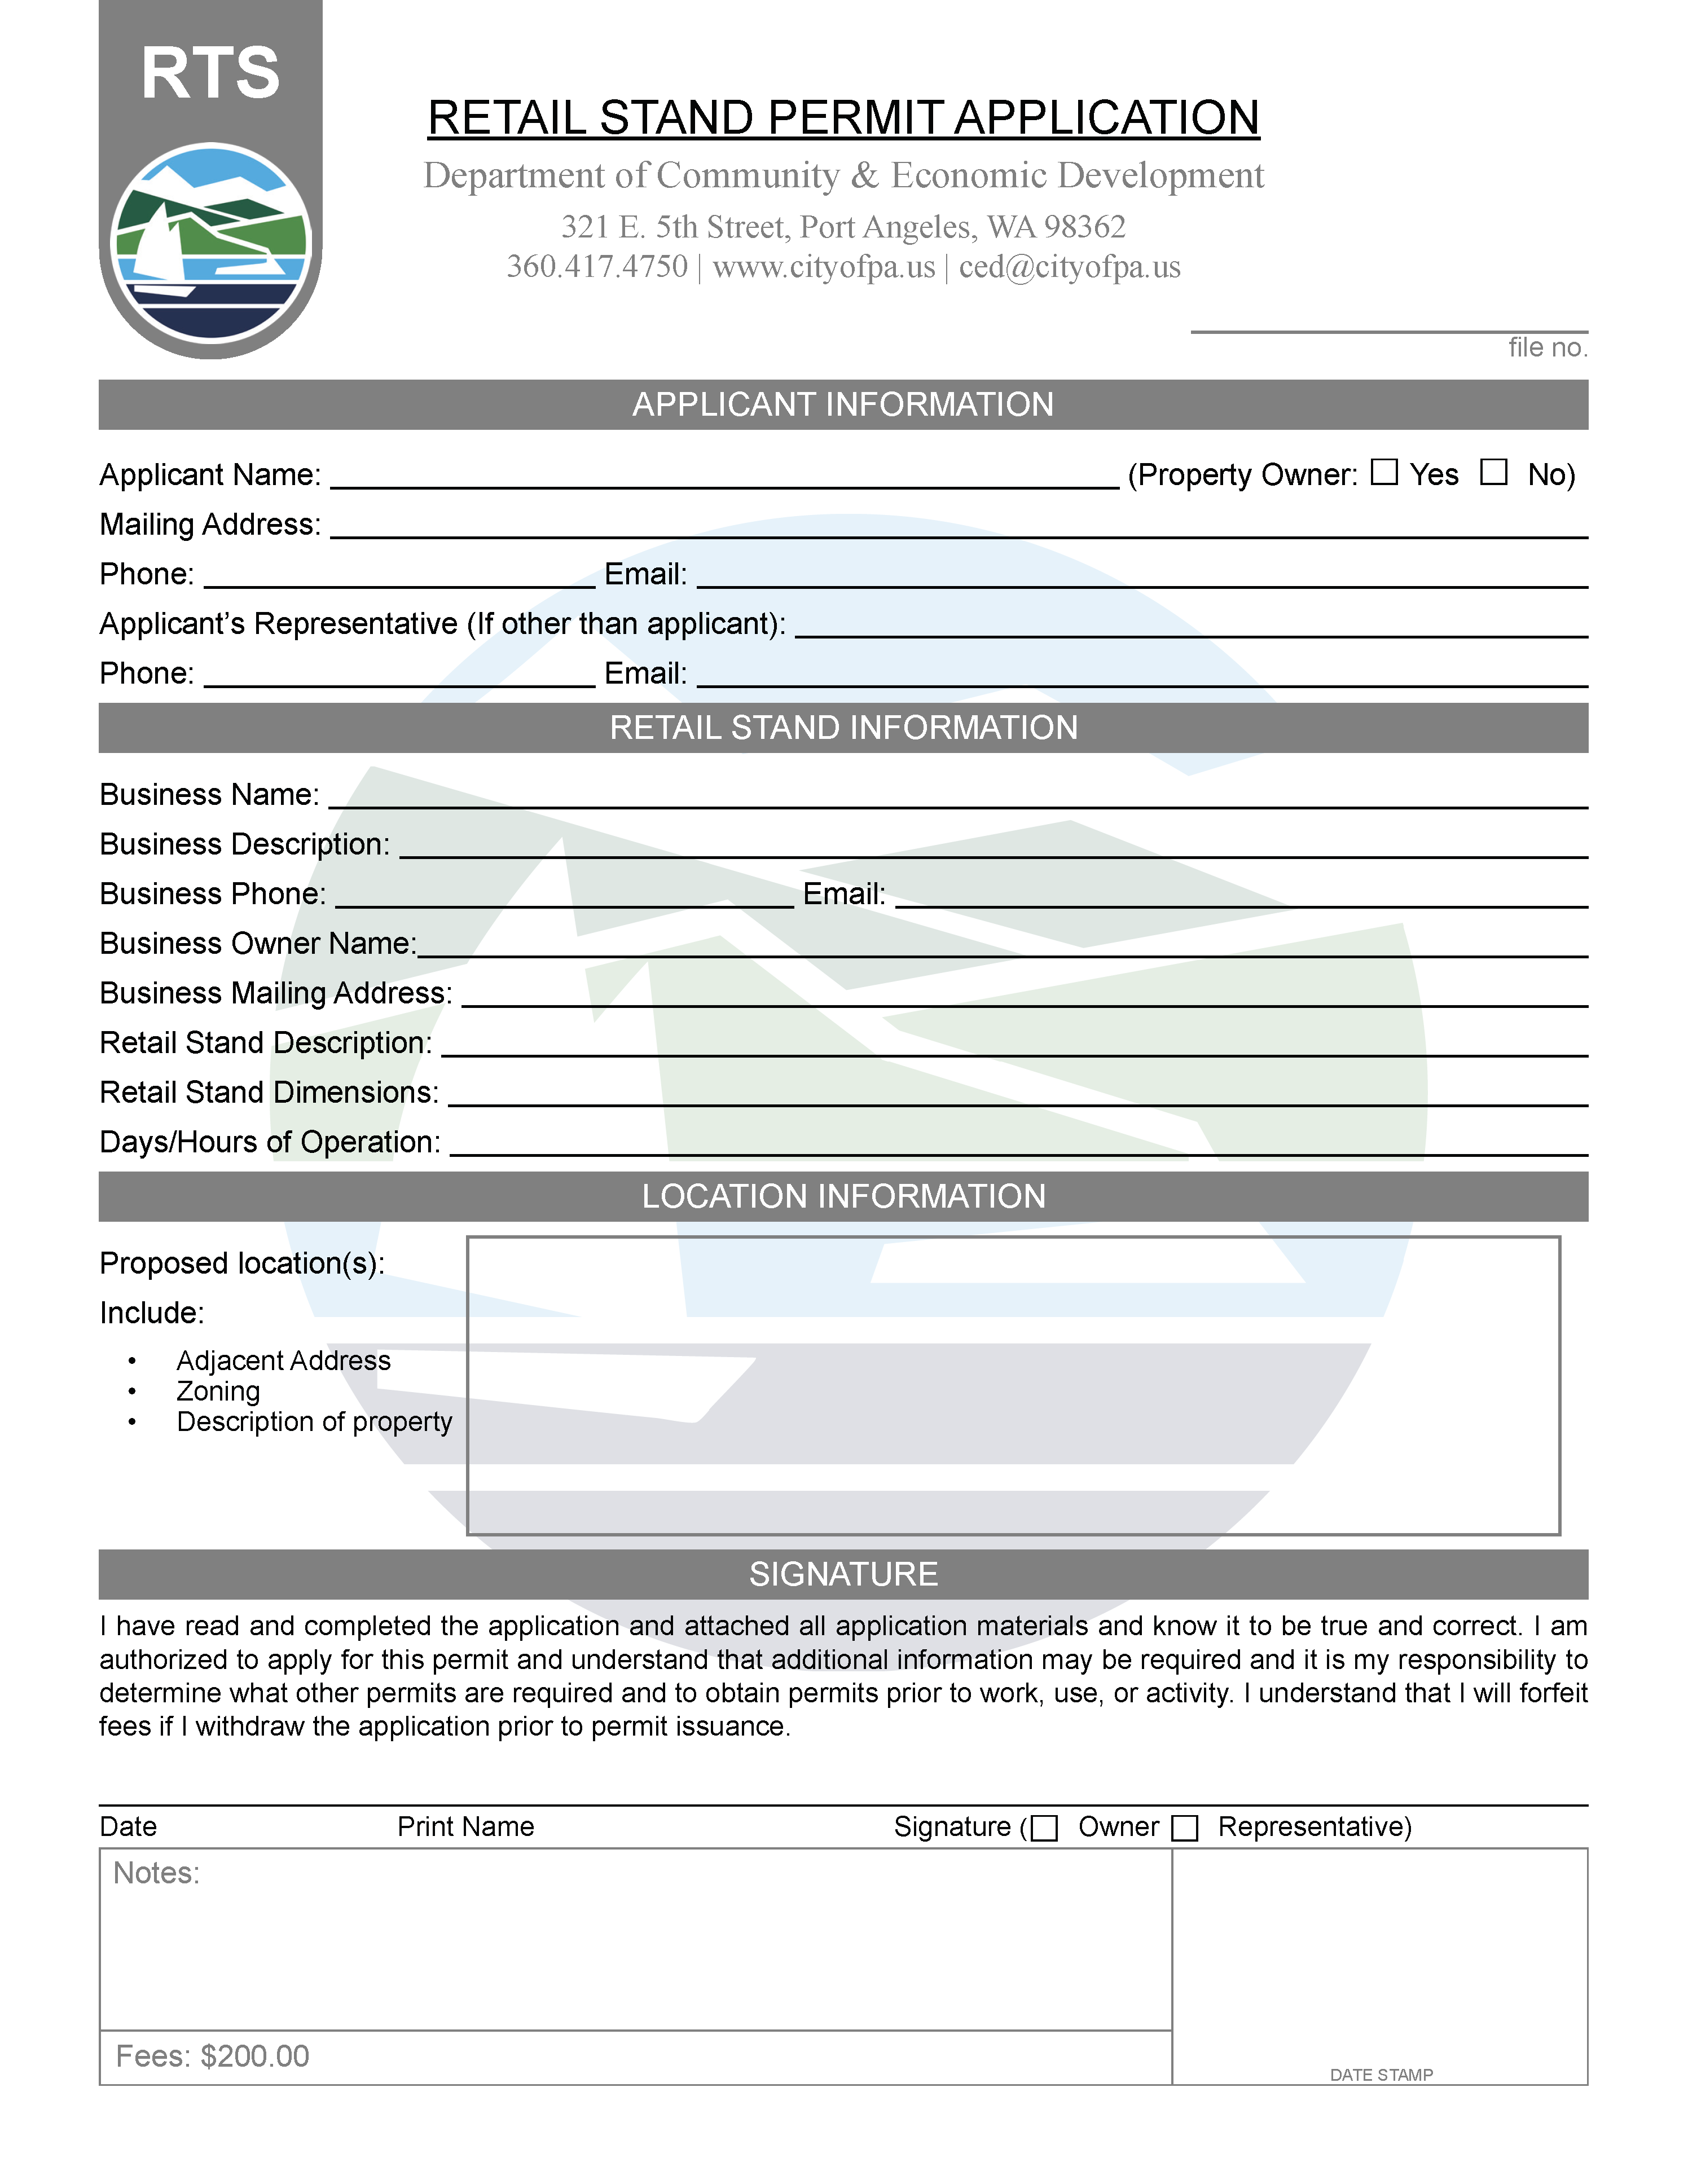 Retail Stand Permit Application